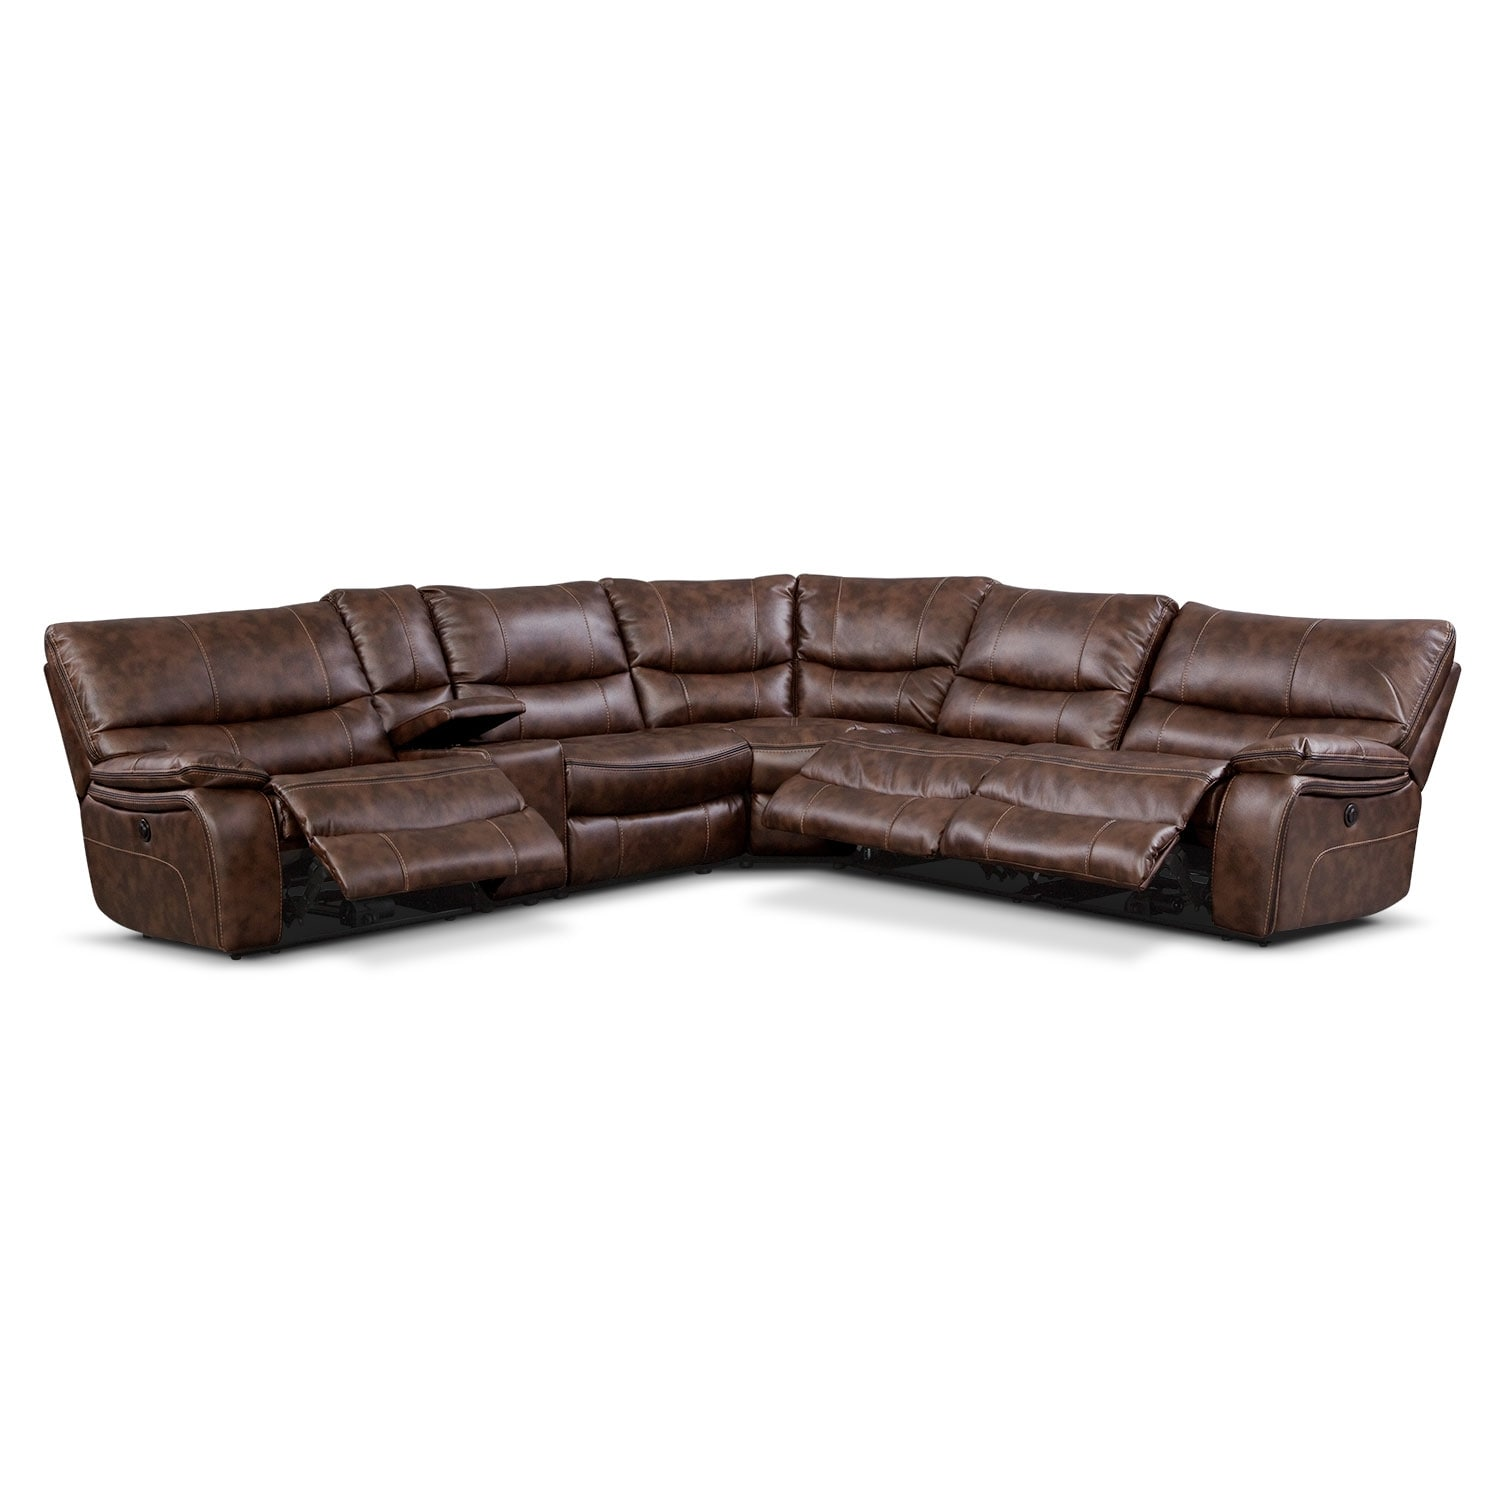 Midori 6 Pc Leather Power Reclining Sectional Sofa: Orlando II 6 Pc. Power Reclining Sectional